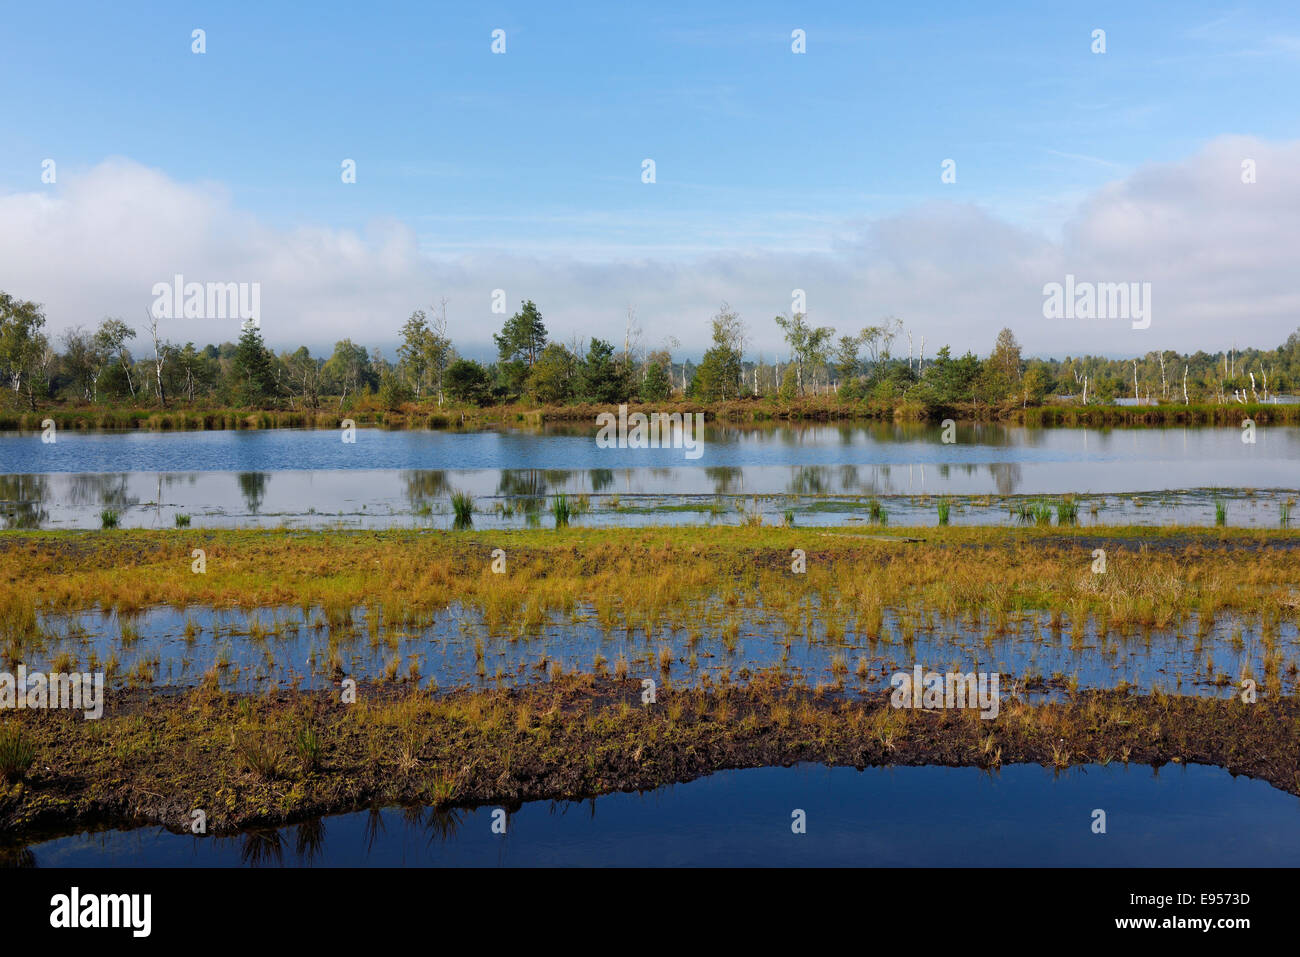 Waterlogged, renatured bog with bulrushes (Schoenoplectus lacustris), common reed (Phragmites australis) and birches Stock Photo